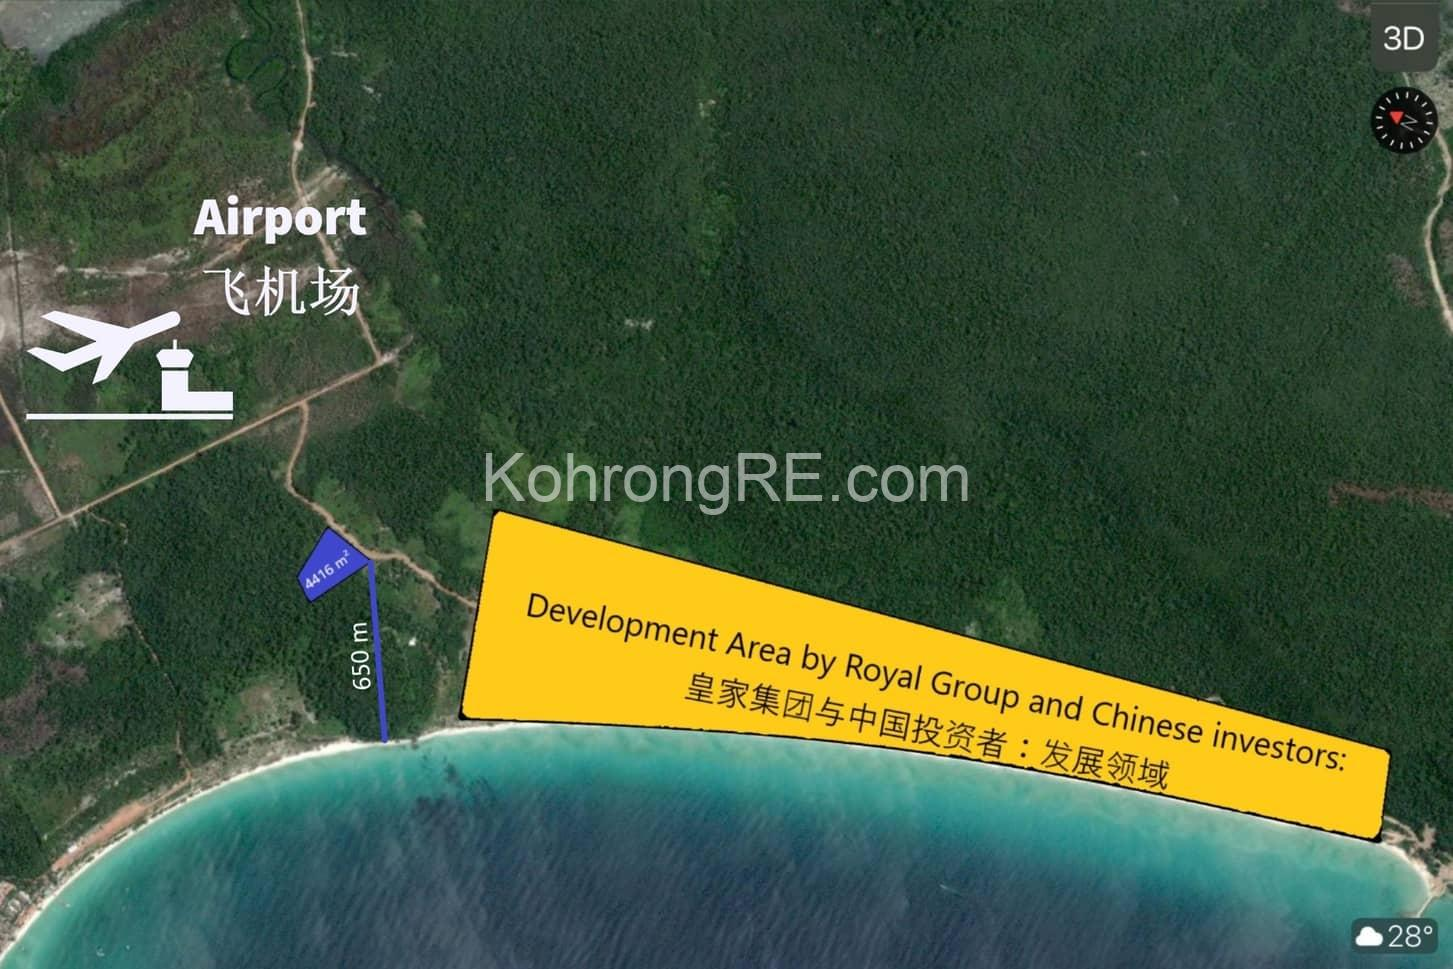 land for sale in Koh Rong near Royal beach long beach main road hard title hard card near airport koh rong